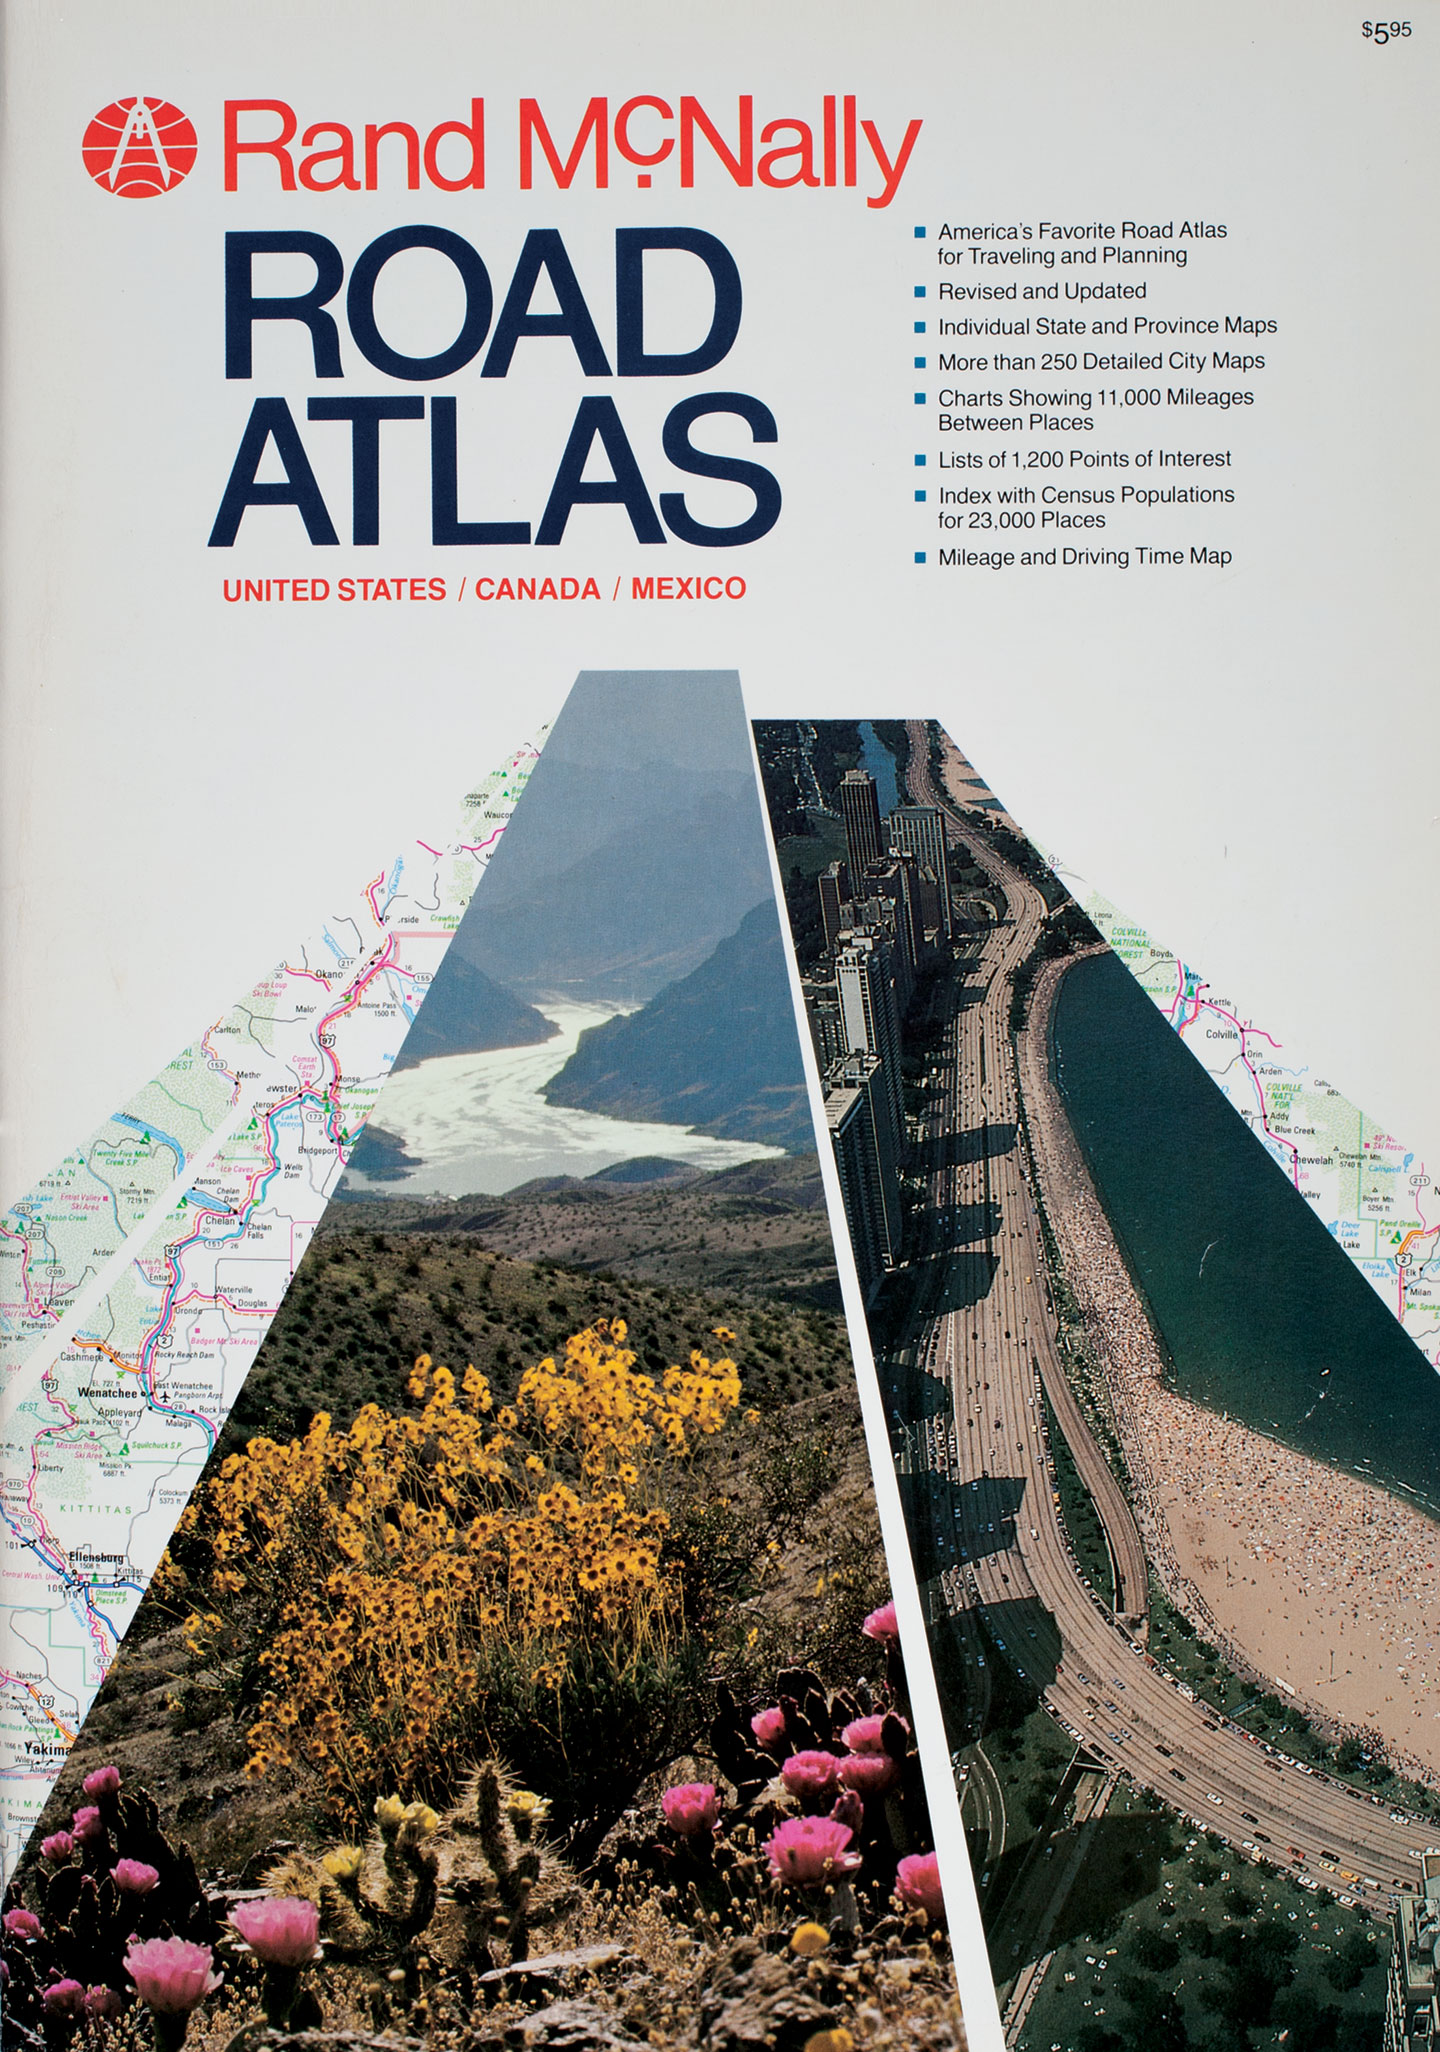 america the beautiful essay rand mcnally Professional academic help starting at $699 per pageorder is too expensive split your payment apart - america the beautiful essay contest rand mcnally.